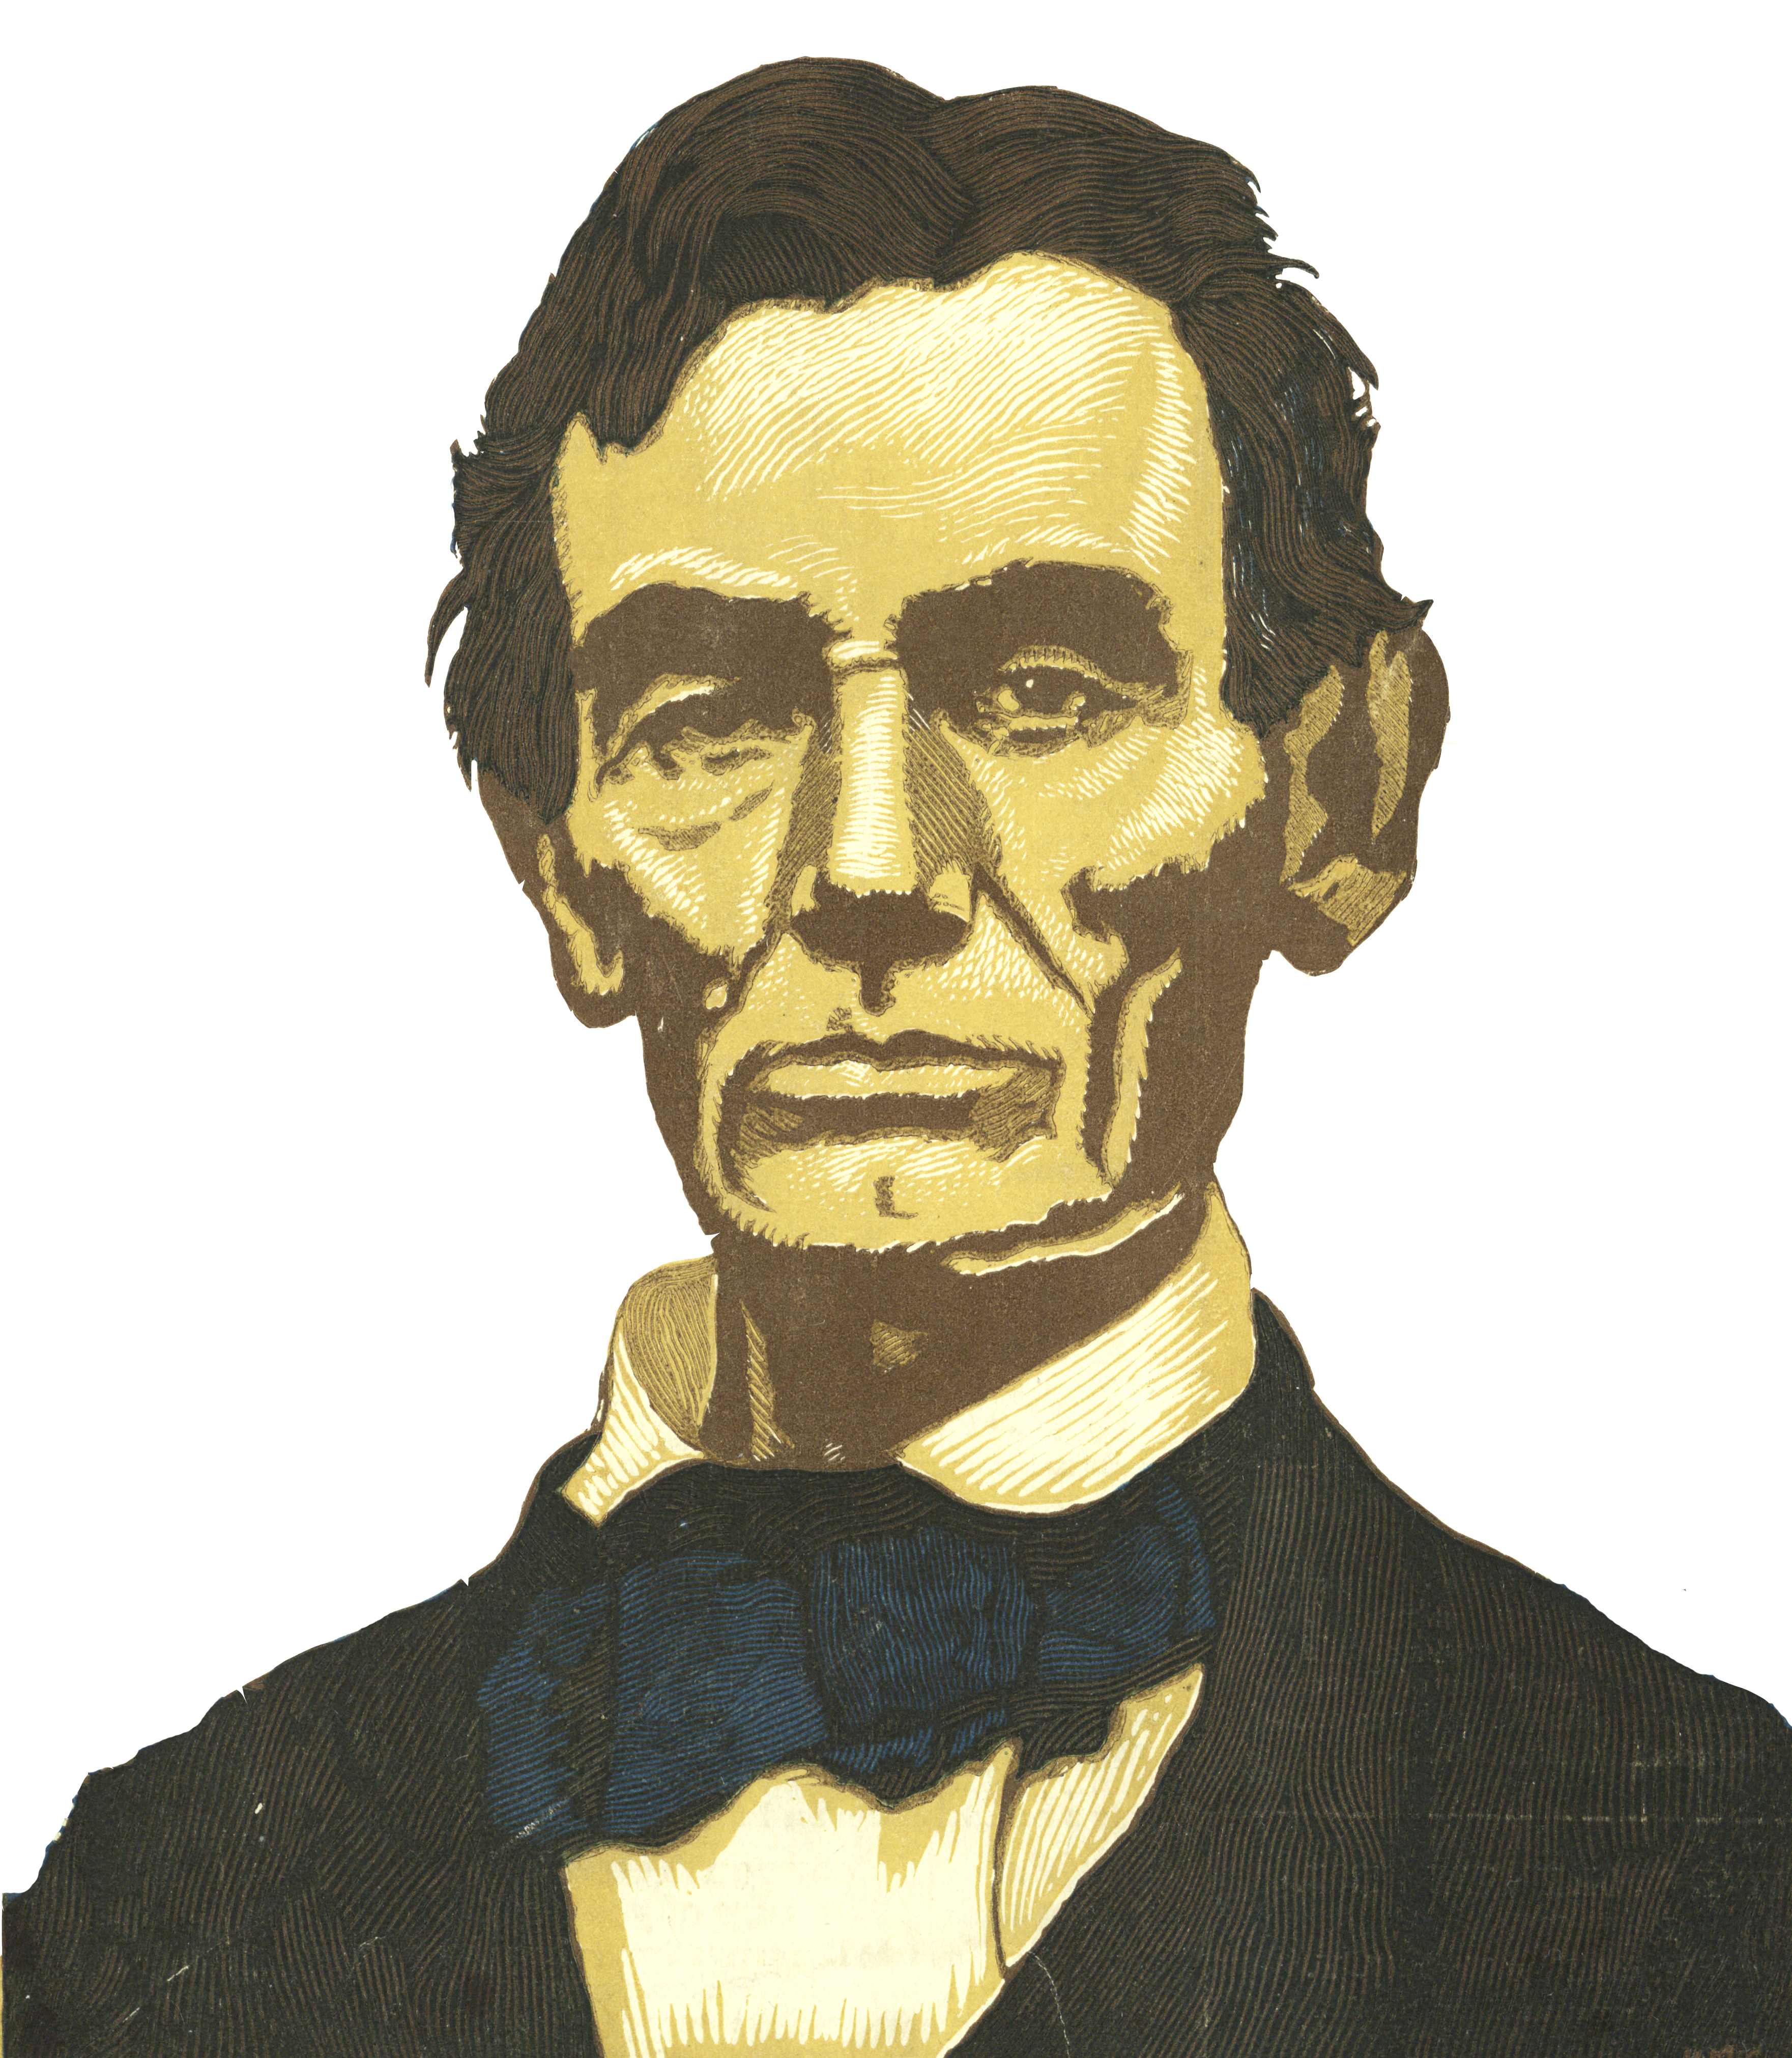 lincoln-exh-images-000004.jpg